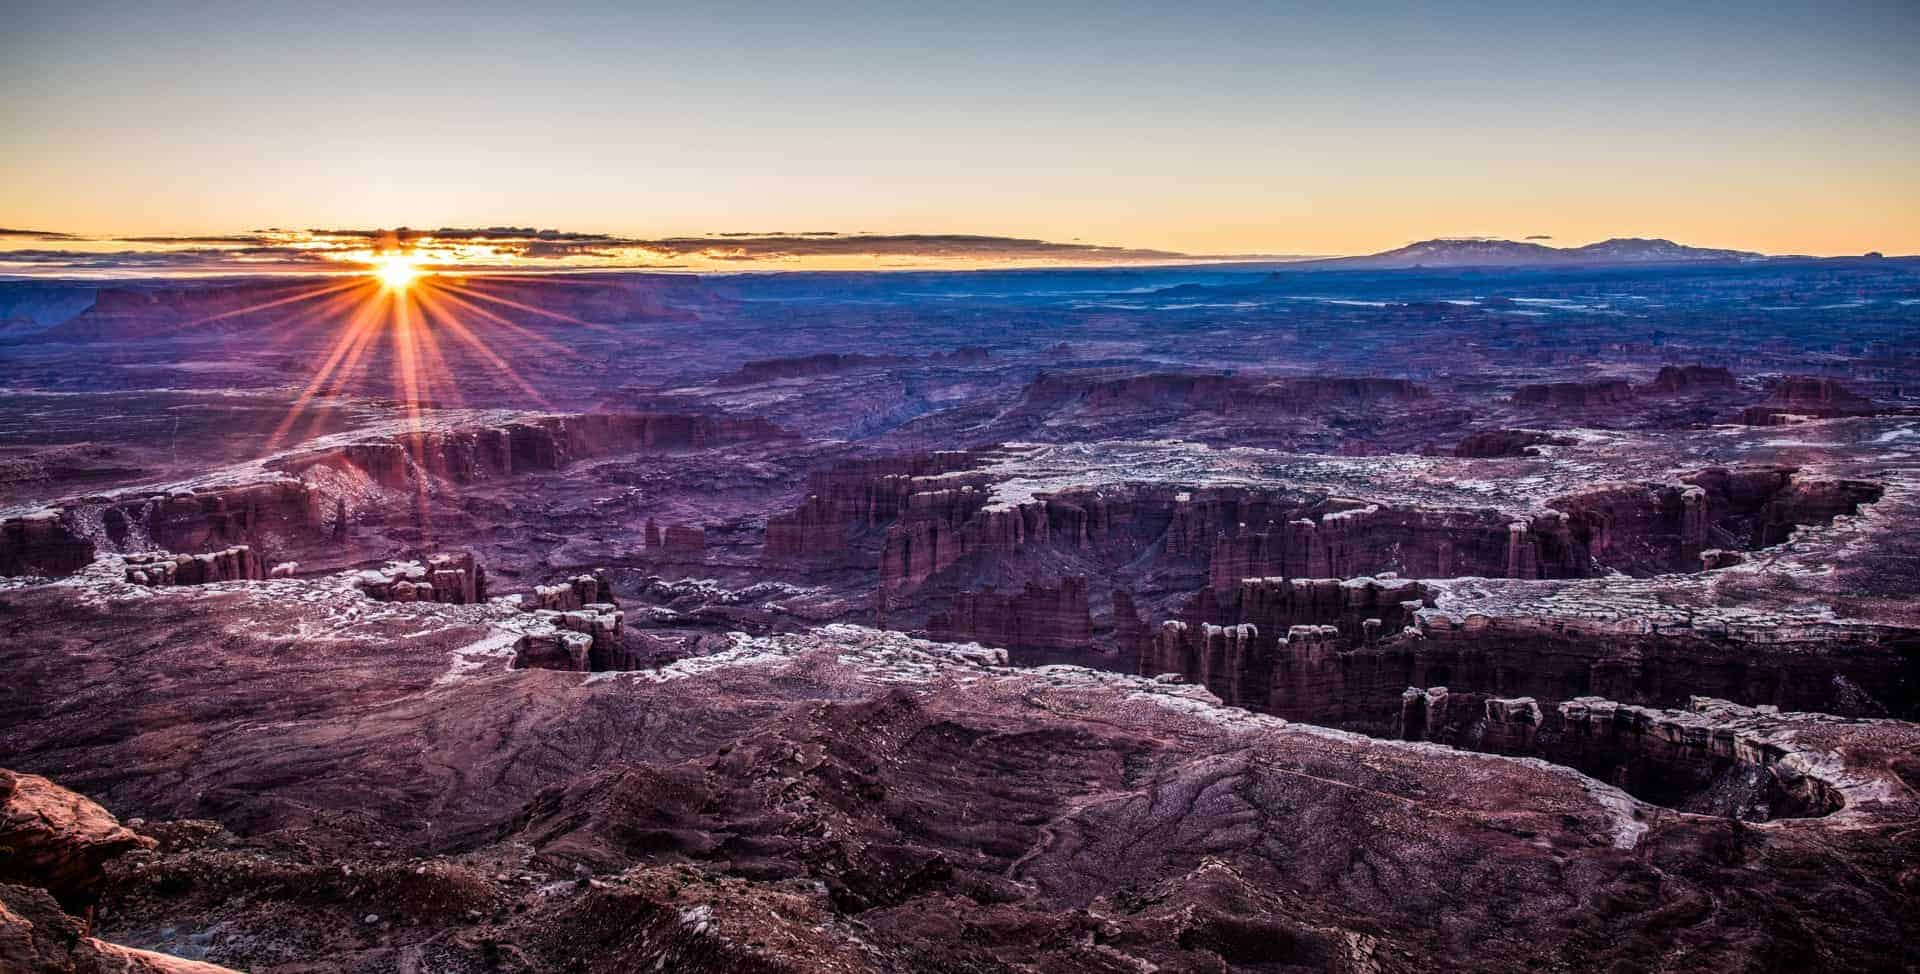 Sunrise Photography: Tips to Get Beautiful Sunrise Photos - Grand View Point at Canyonlands National Park, Utah